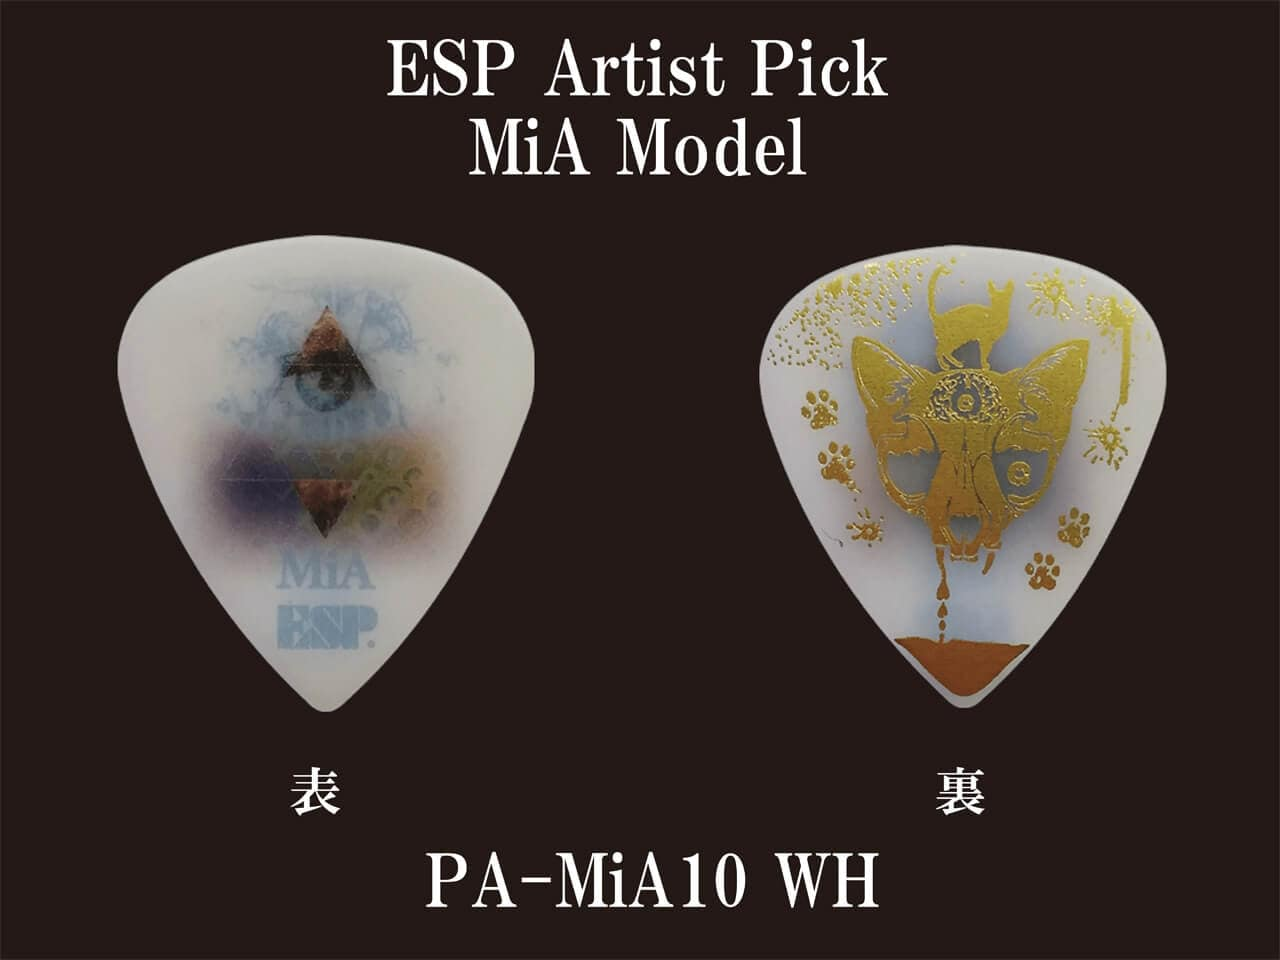 ESP(イーエスピー) Artist Pick Series PA-MiA10 WH (MiA Model)